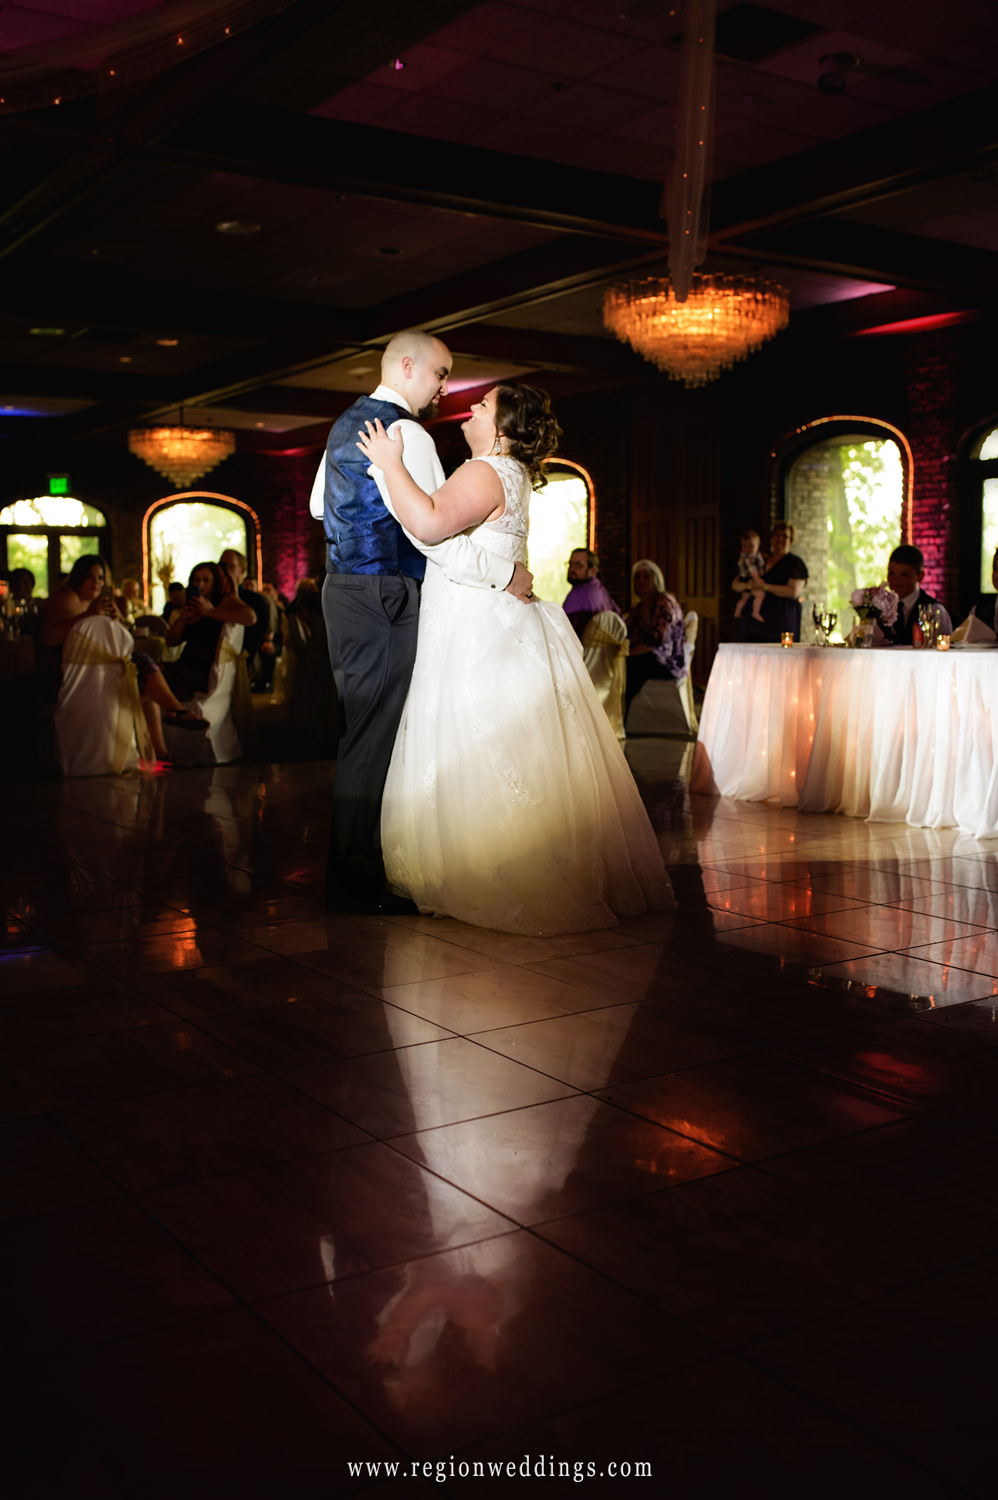 First dance for the bride and groom at their reception at Wicker Park.